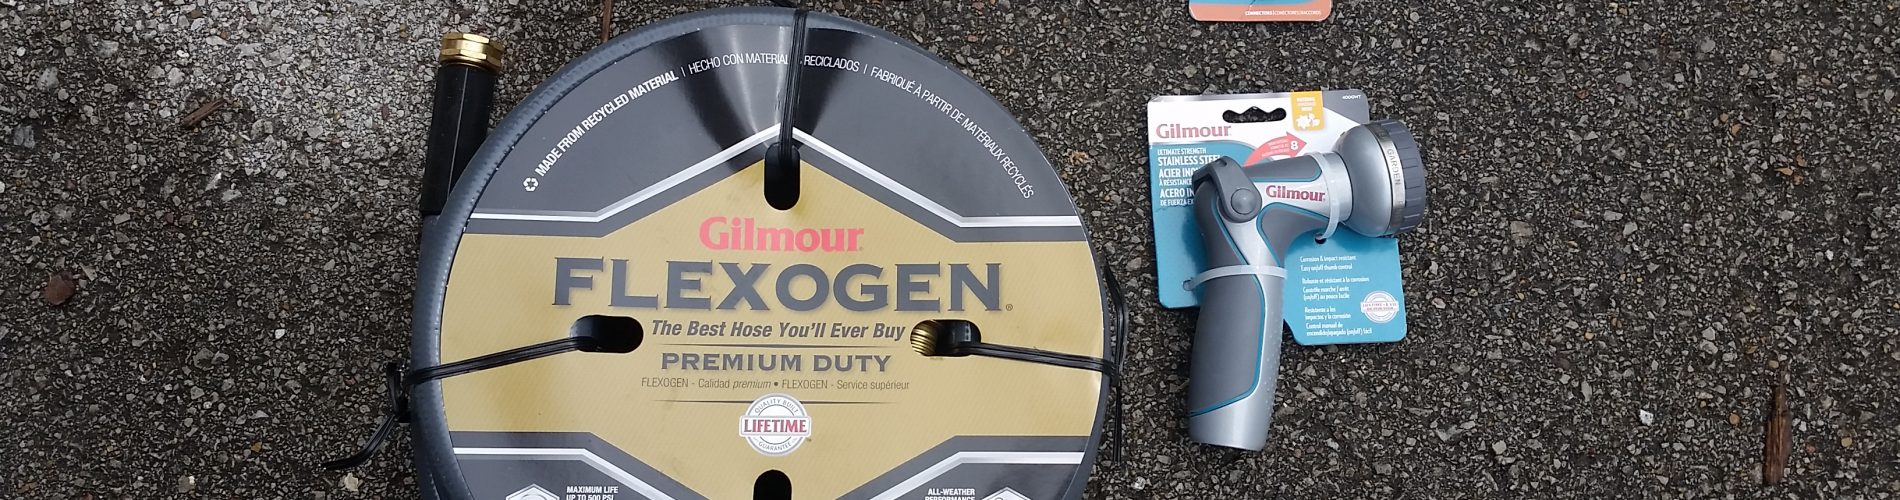 Gilmour Watering Products